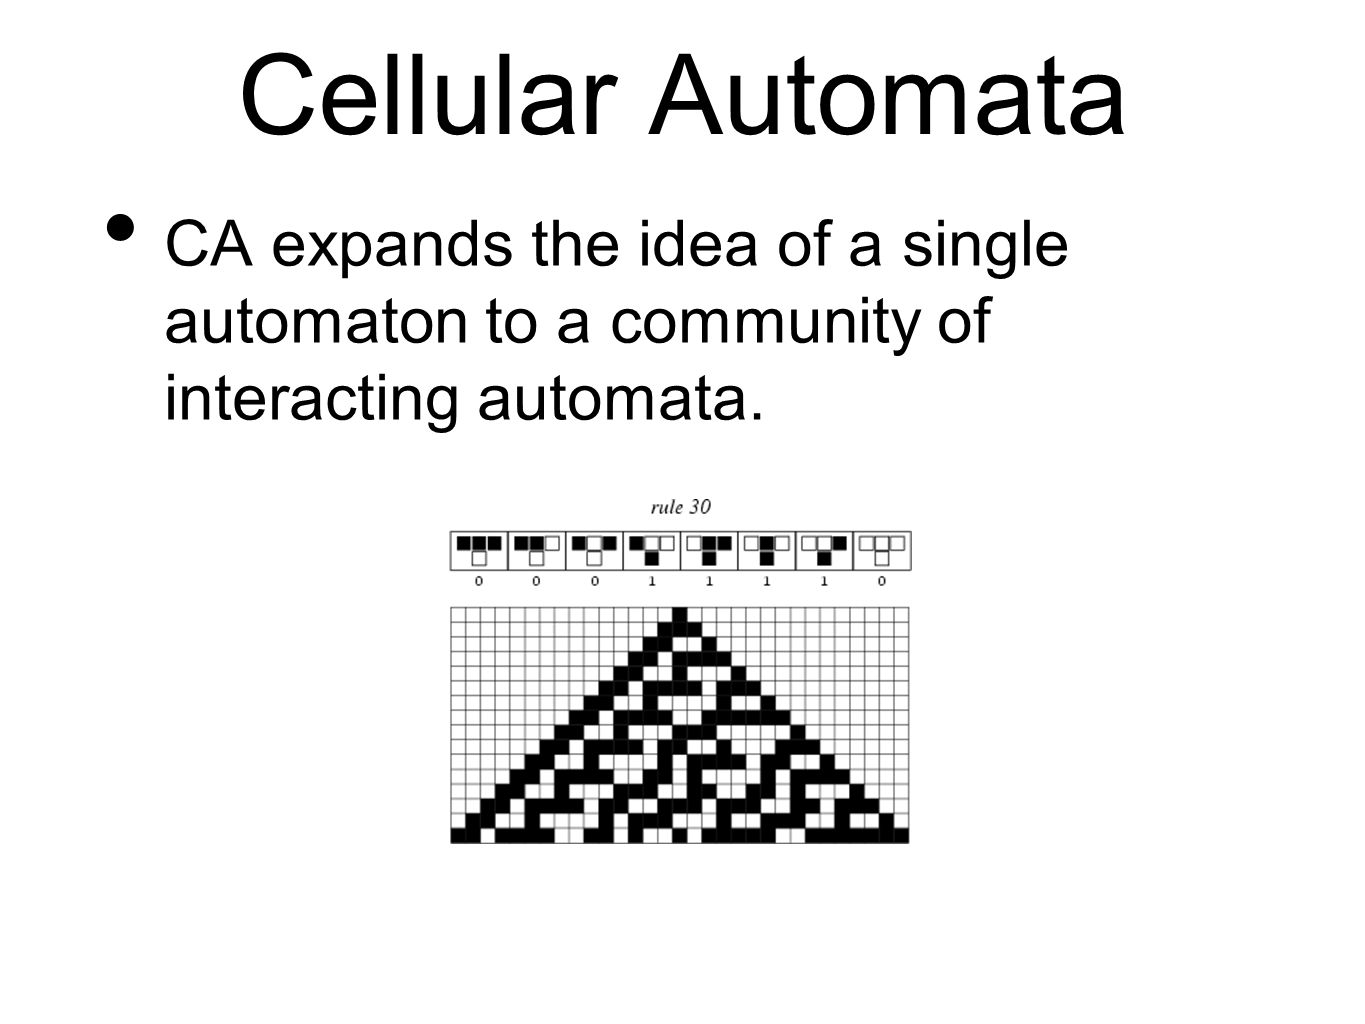 Cellular Automata CA expands the idea of a single automaton to a community of interacting automata.